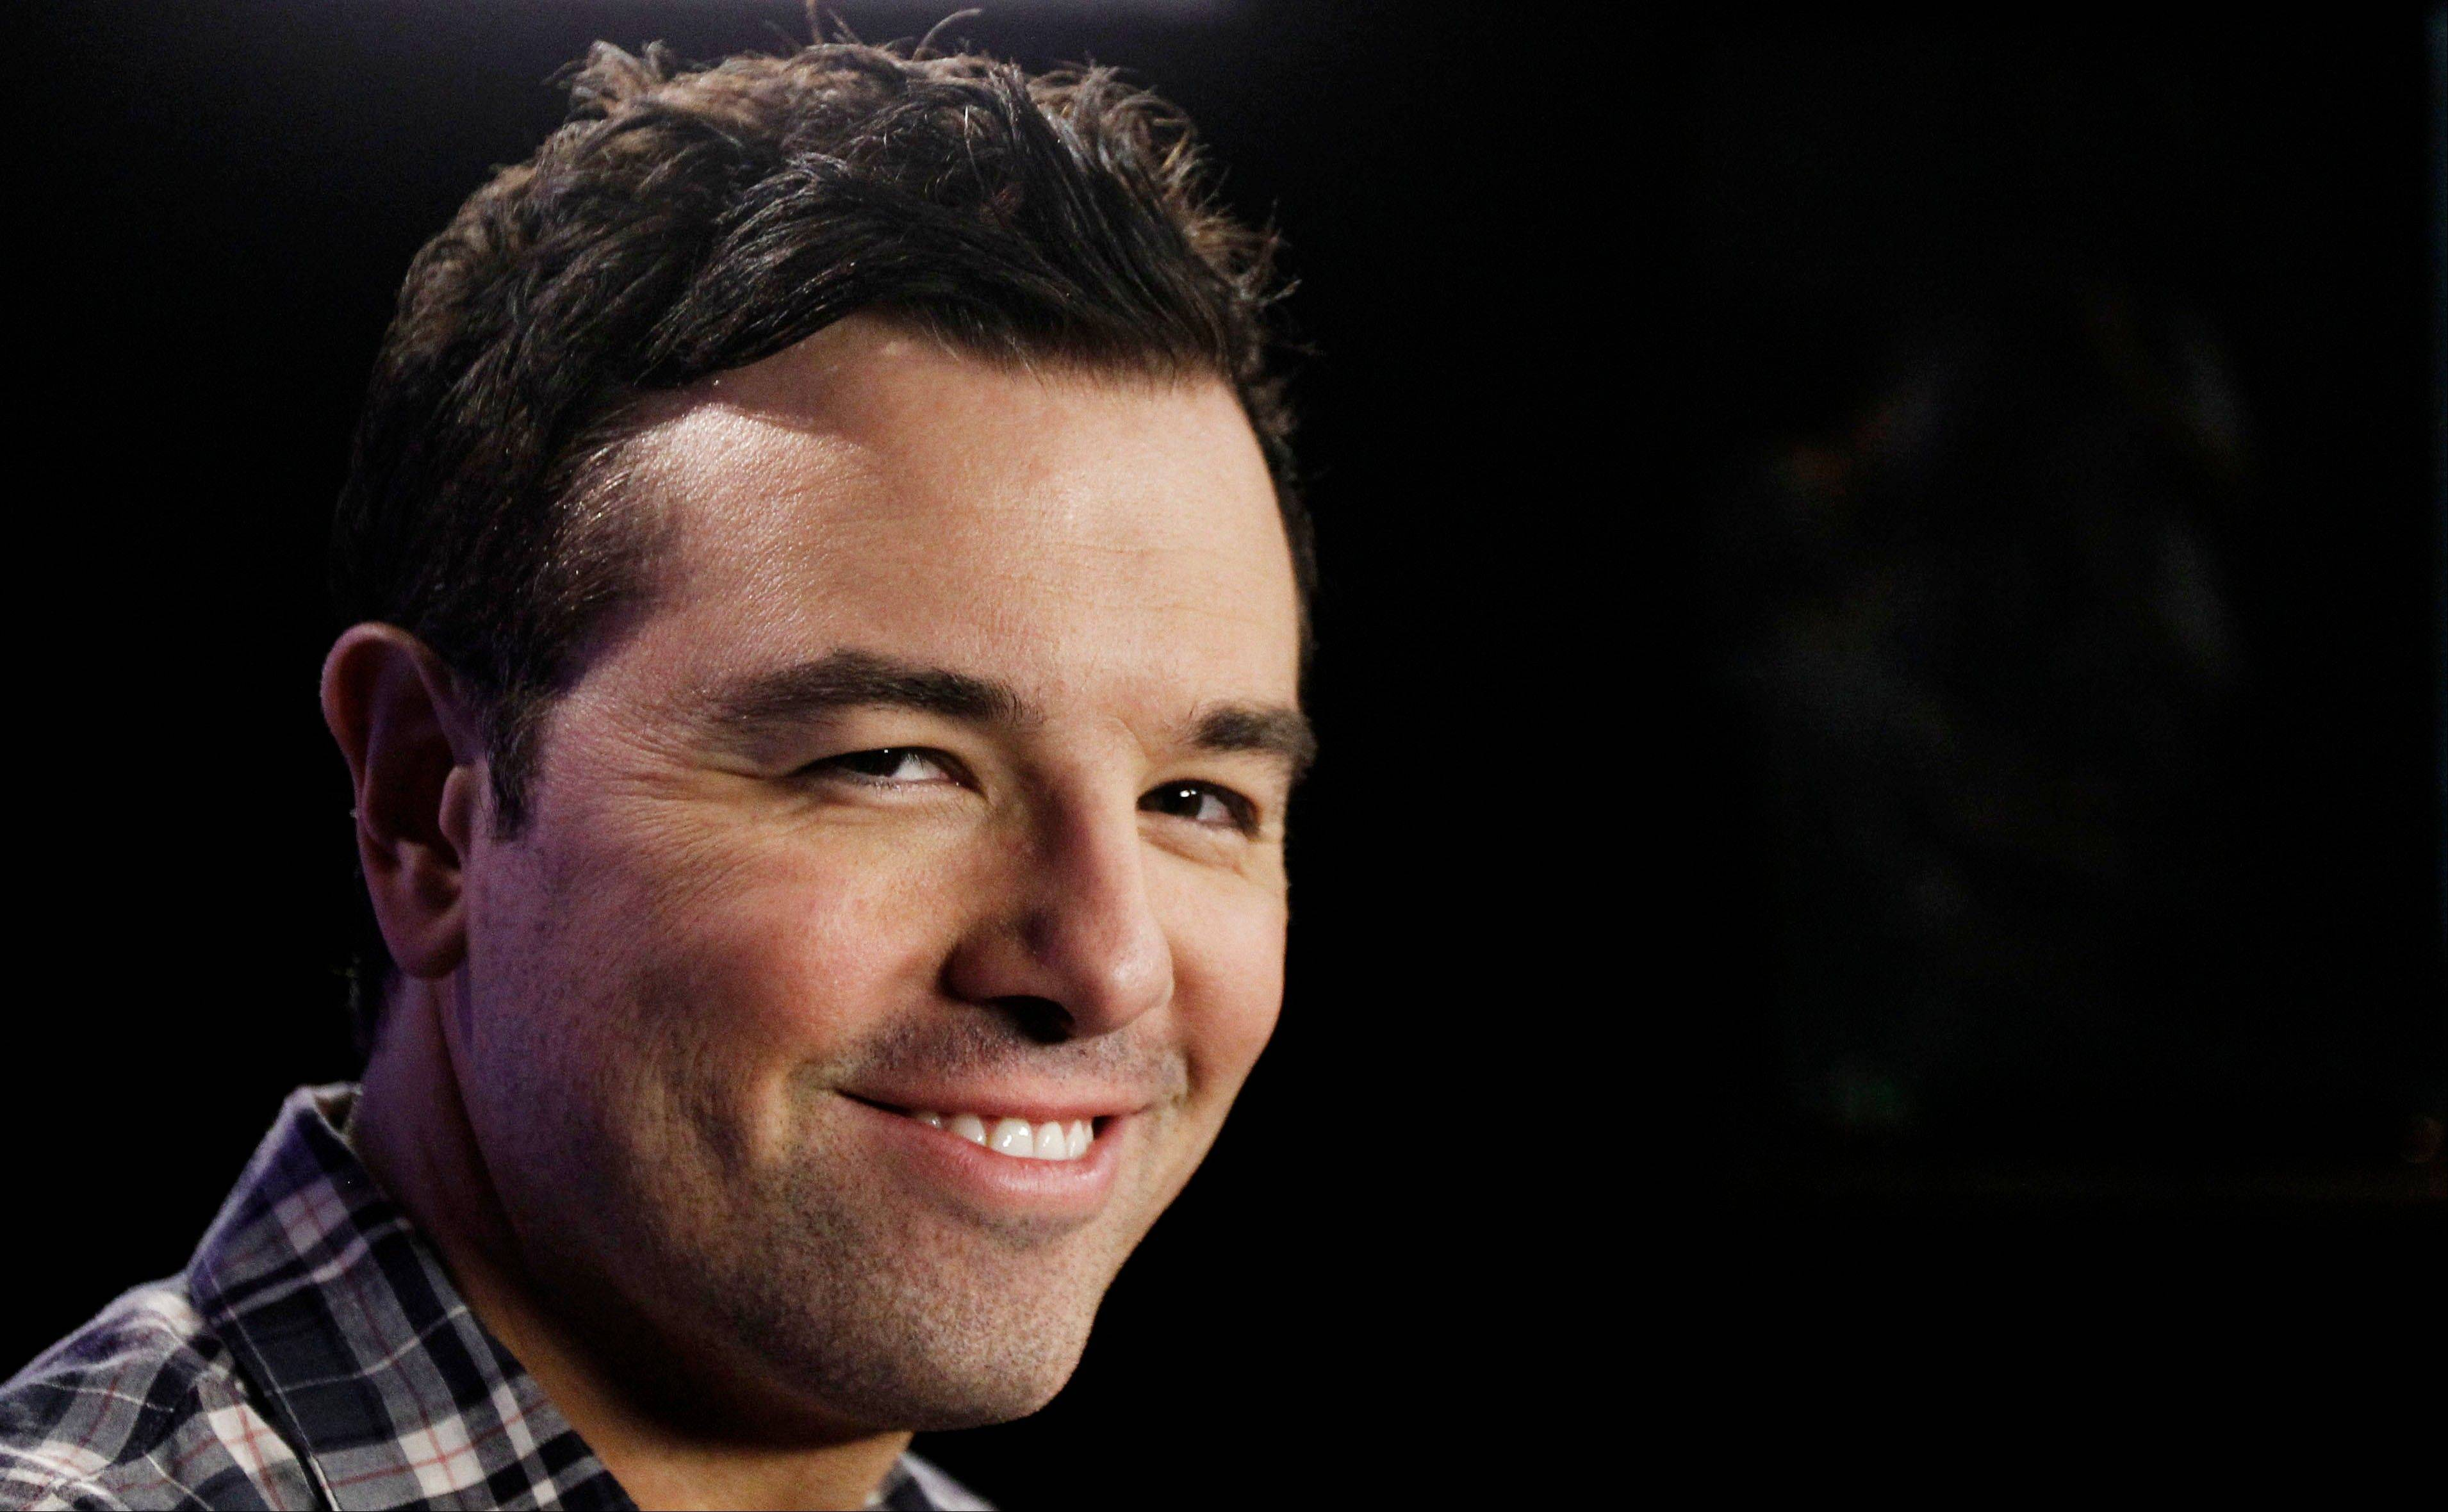 Fox is betting big on its first miniseries and shows from heavyweight producers Seth MacFarlane and J.J. Abrams to invigorate its schedule.